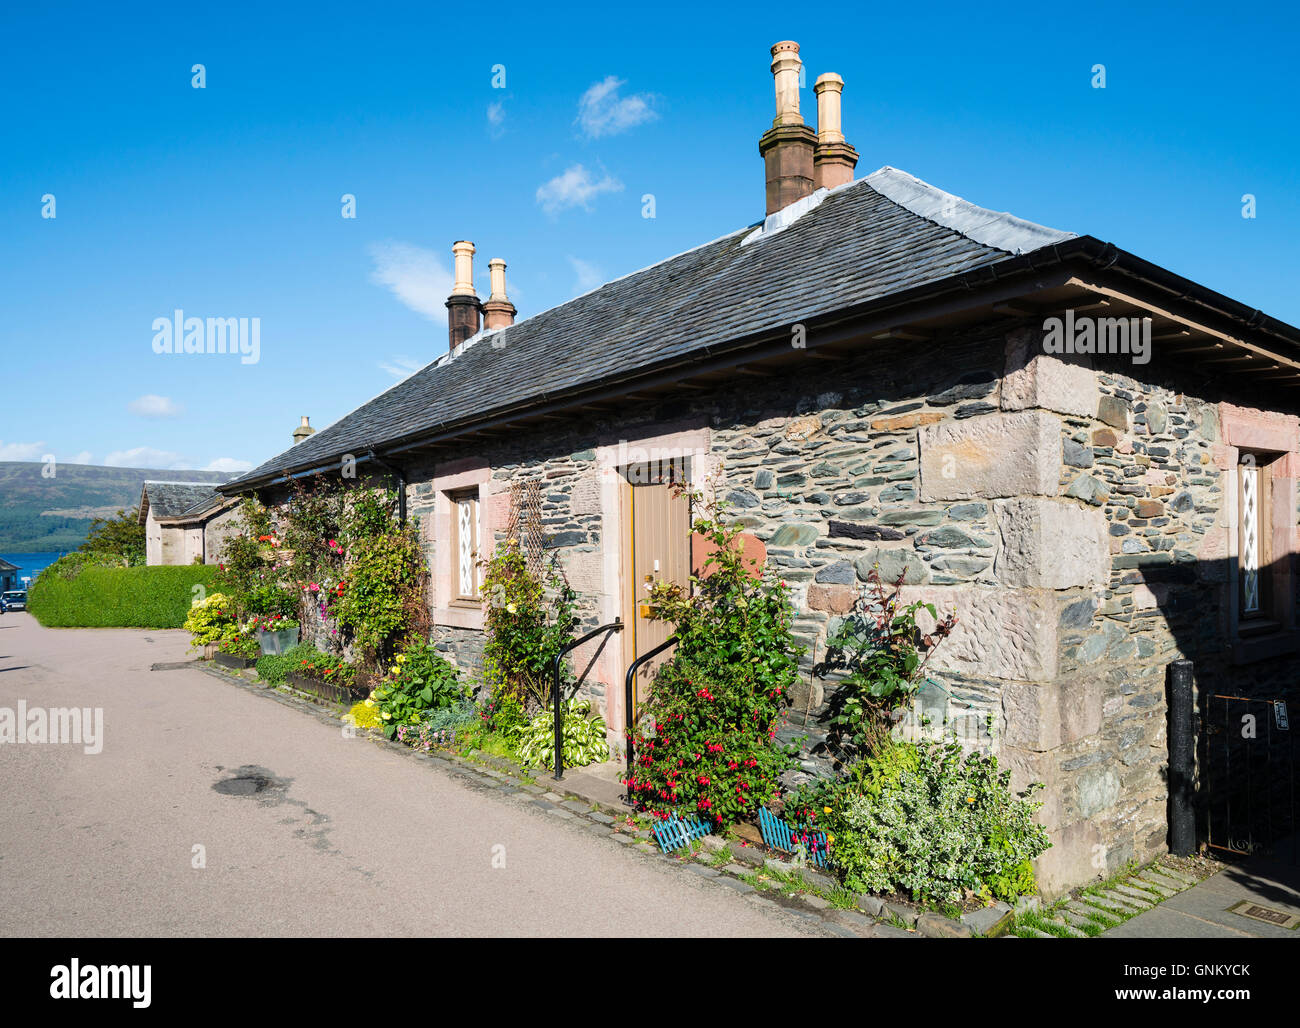 Traditional old cottages in historic village of Luss on banks of Loch Lomond, in Argyll and Bute, Scotland, United - Stock Image